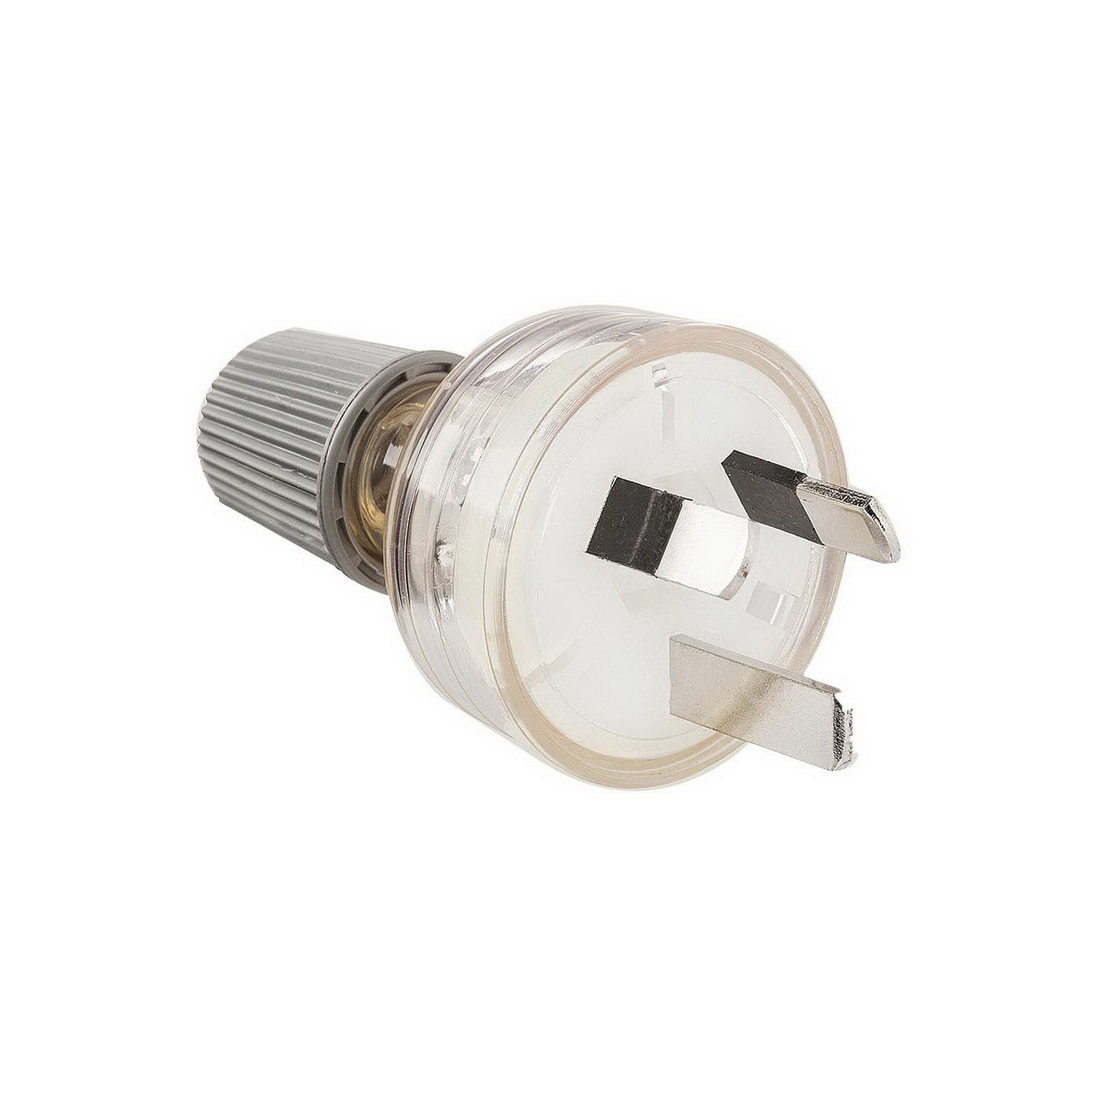 3-Pin Male Electrical Plug Top with Cord Locking Nut White